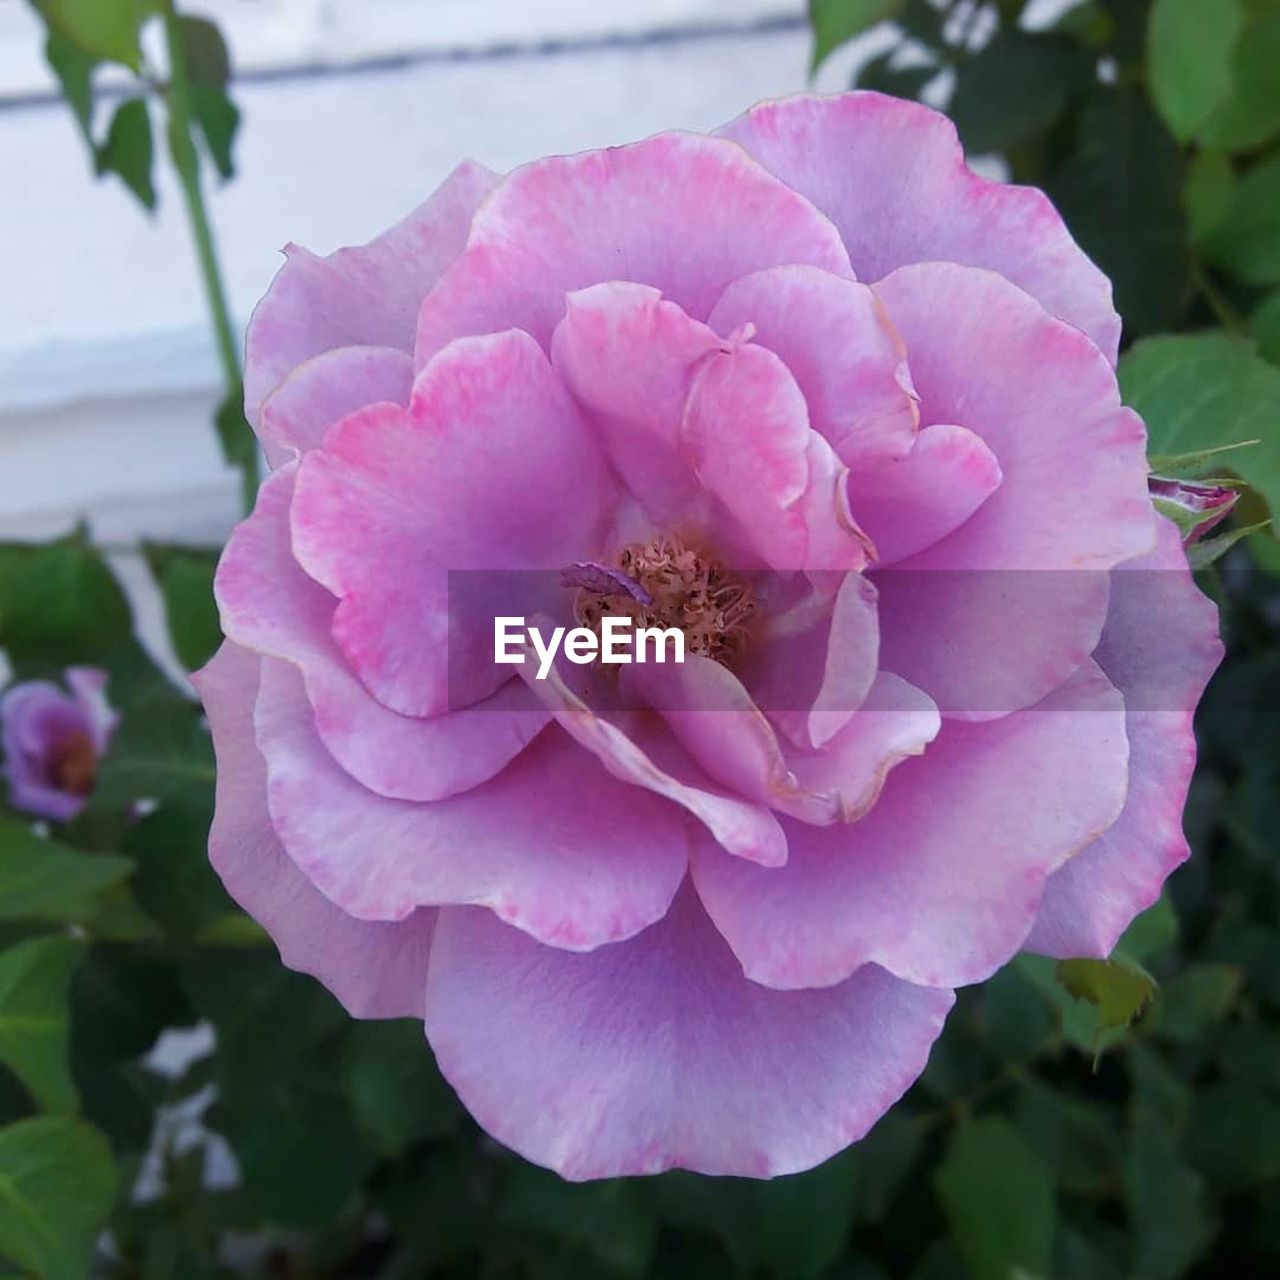 flower, flowering plant, plant, fragility, vulnerability, beauty in nature, petal, freshness, pink color, close-up, growth, inflorescence, flower head, focus on foreground, nature, rose, day, no people, outdoors, wild rose, pollen, purple